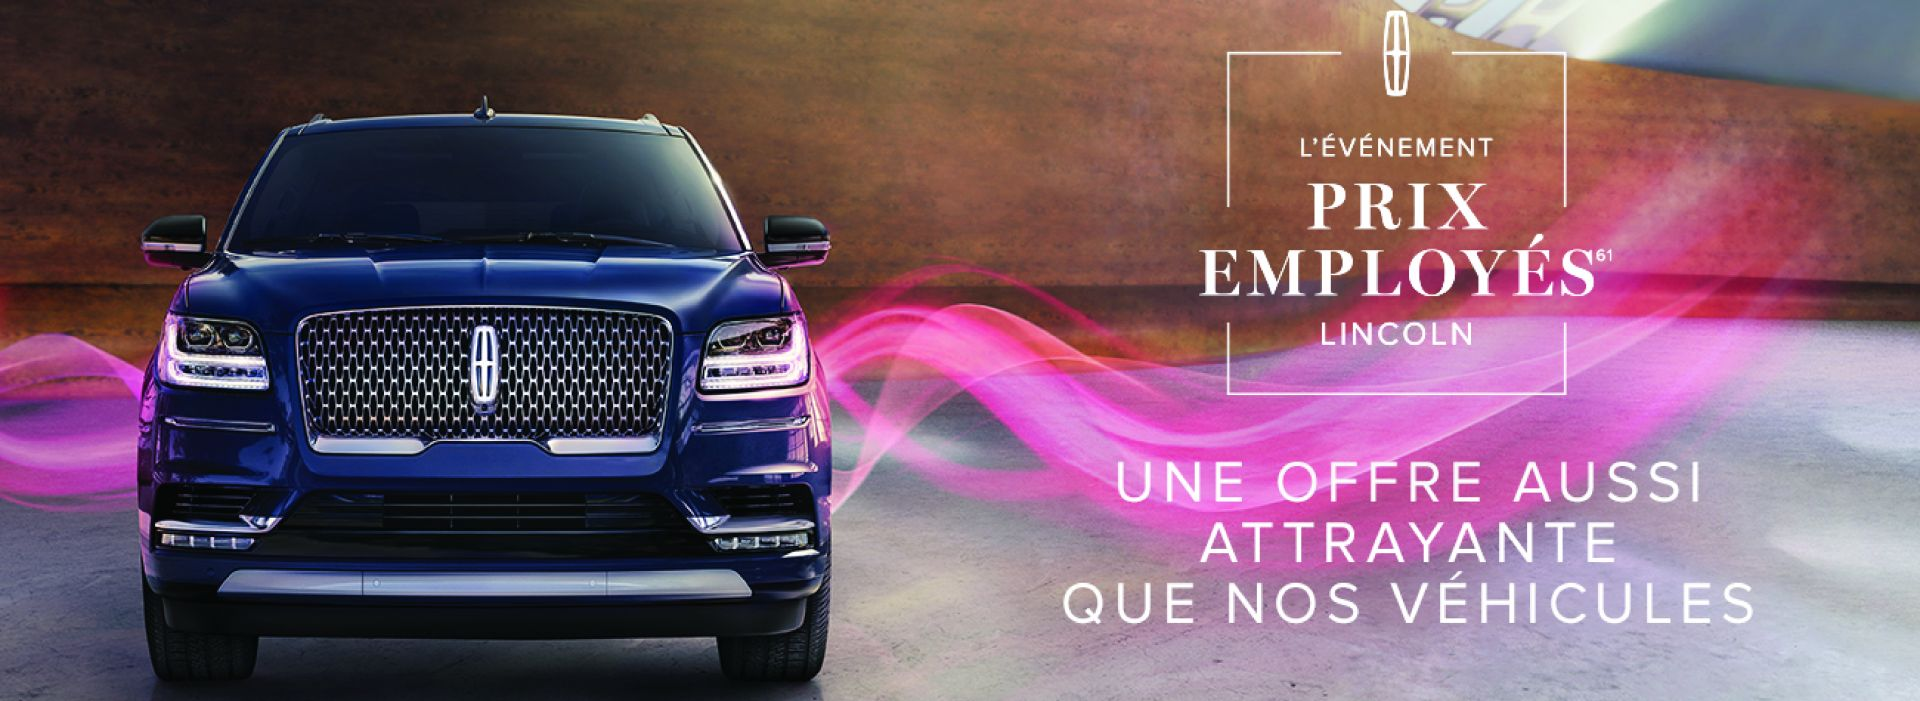 https://www.lincolngabriel.com/fr/promotions/new-vehicles-promotions